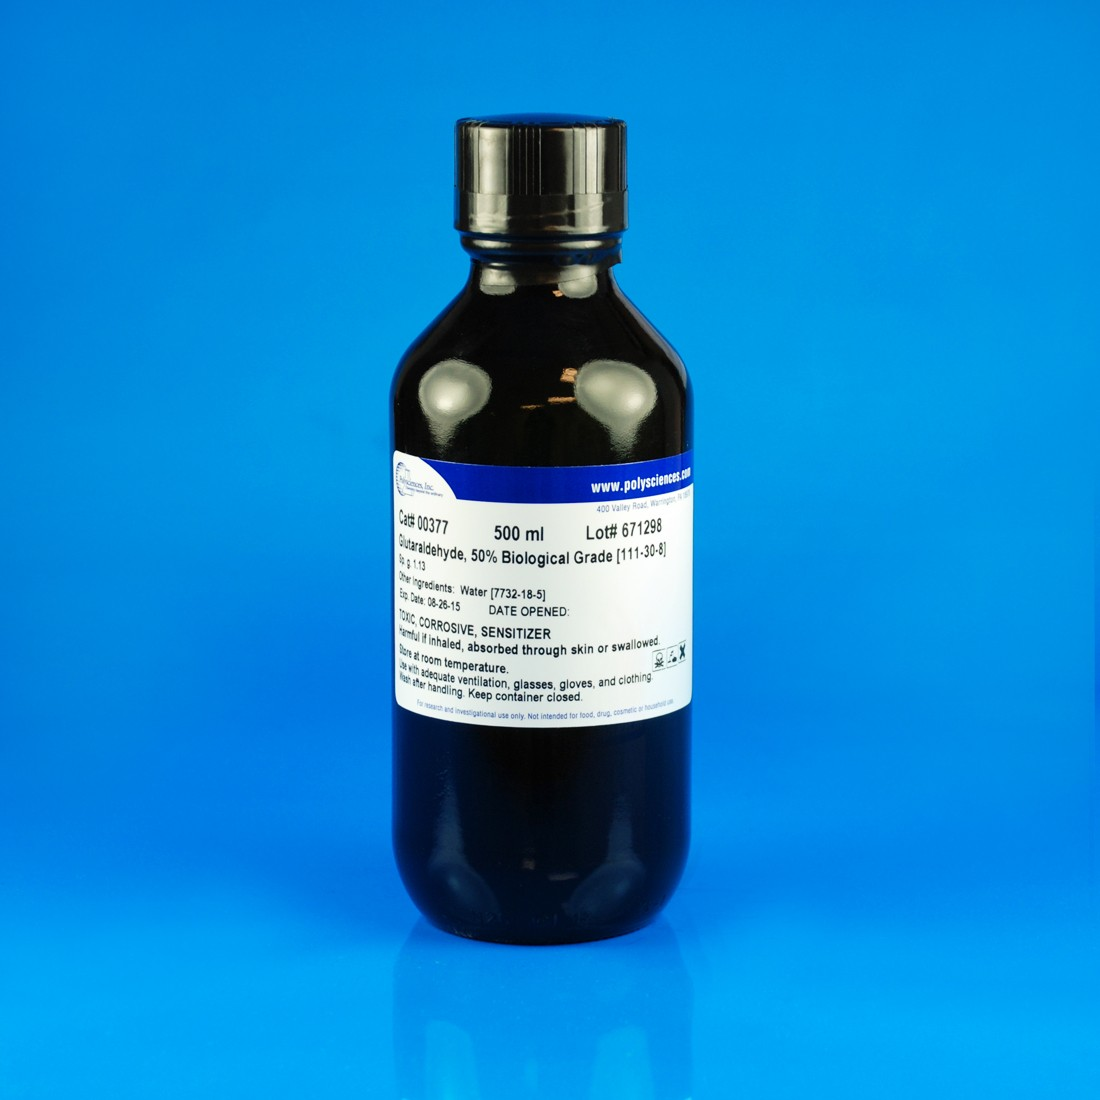 Glutaraldehyde, 50% Biological Grade